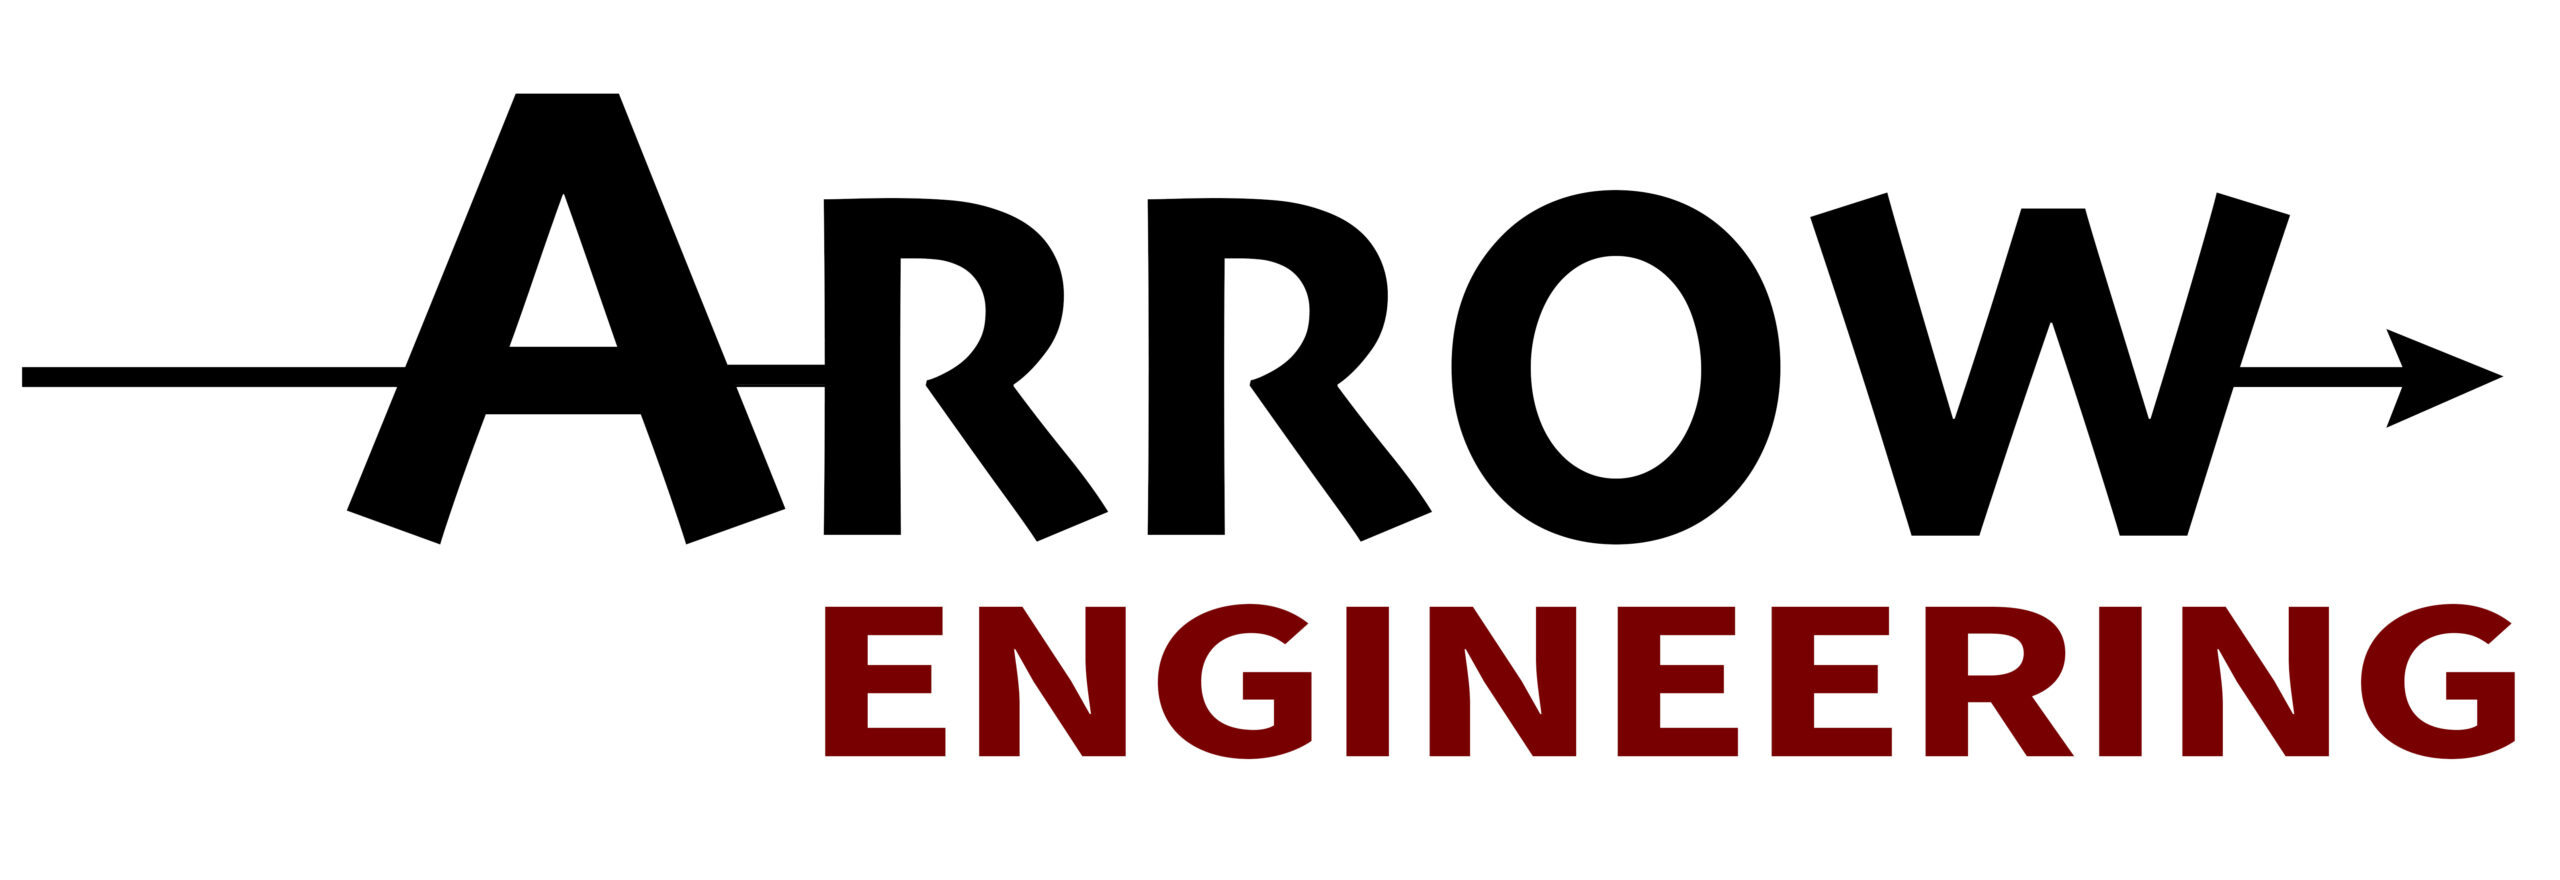 Arrow Engineering